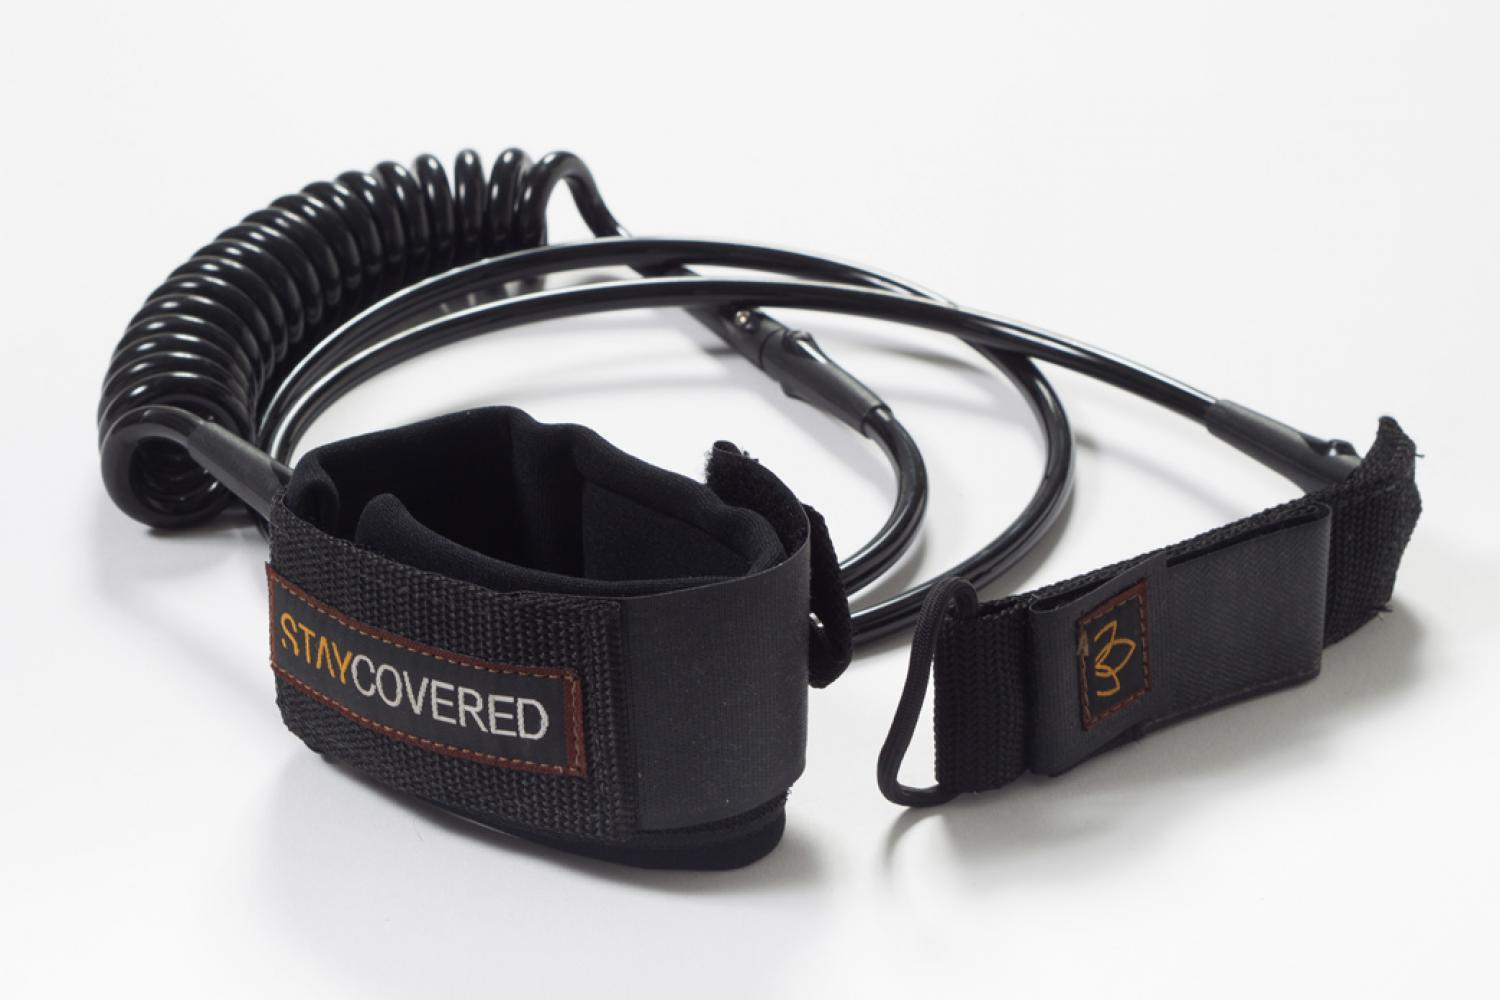 STAY COVERED 10FT Hybrid Leash